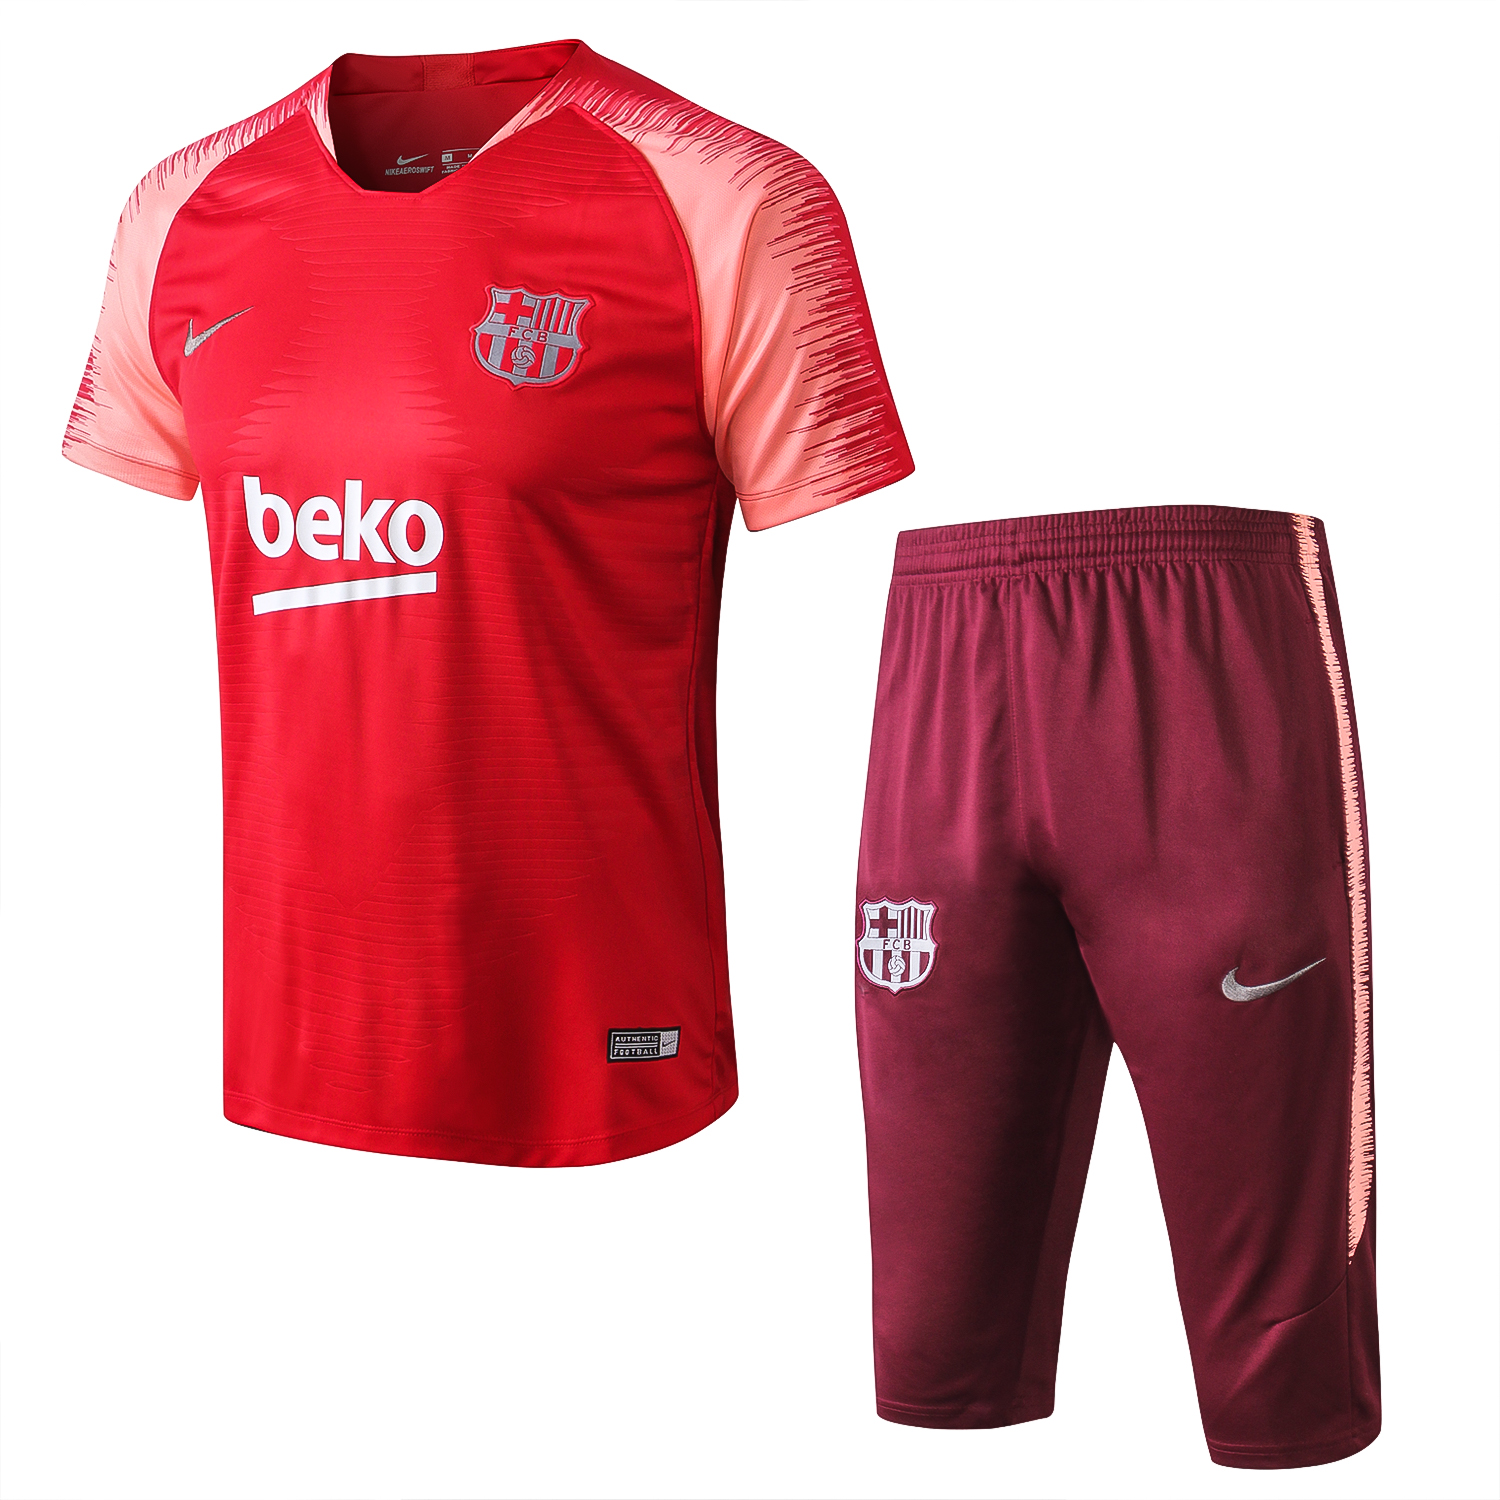 huge discount 4fd56 6f59a Barcelona Short Training Suit 2019/2020 - Pink/Red